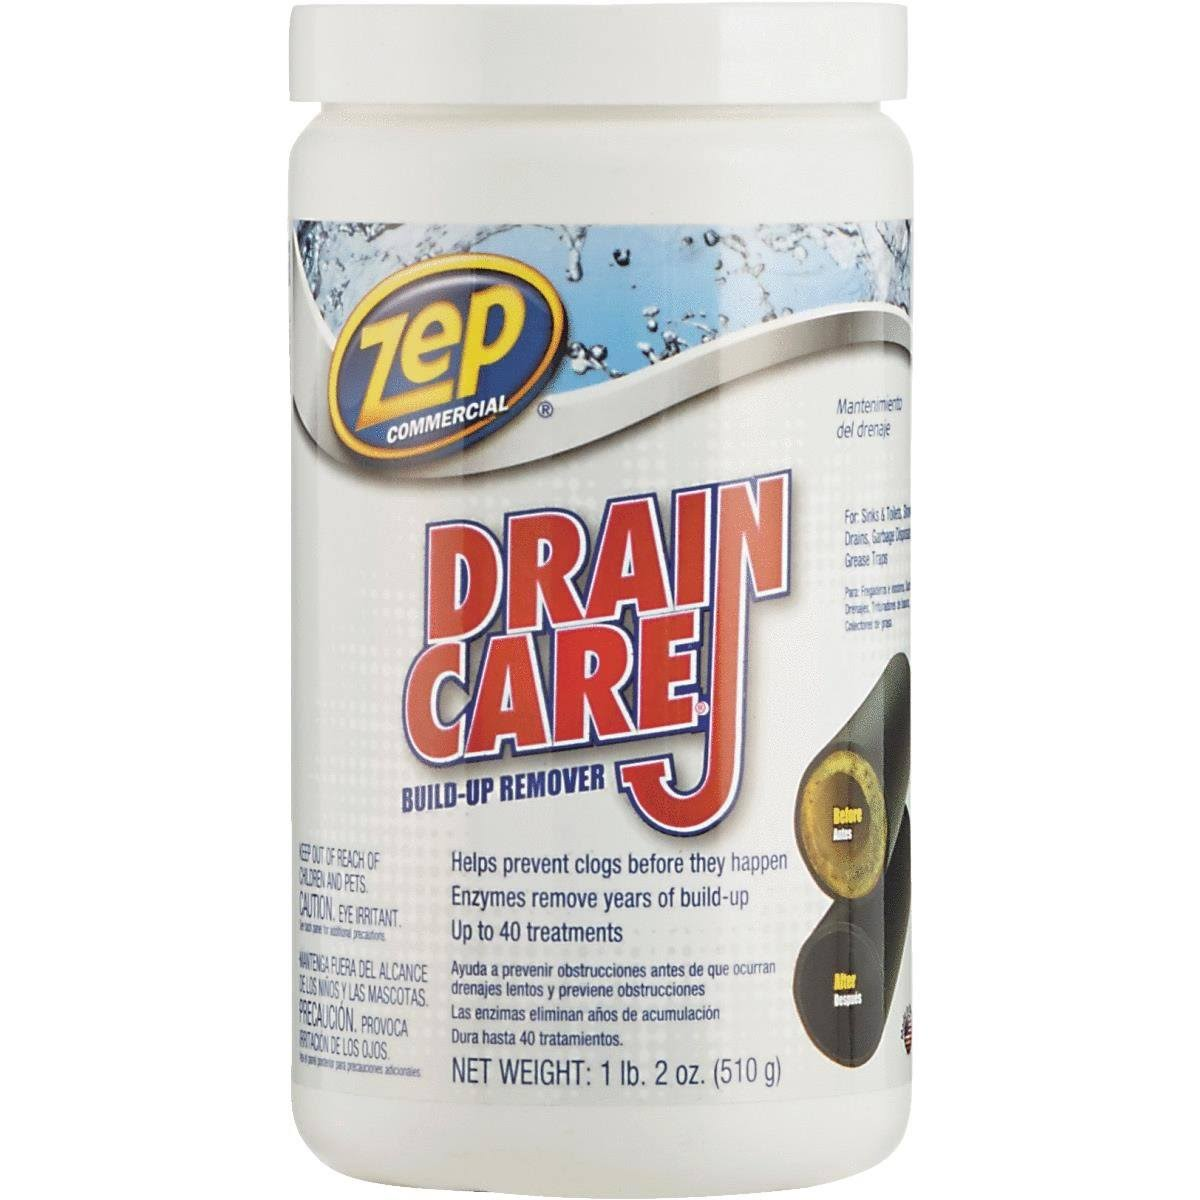 Zep Commercial Drain Care - Professional Strength, 16oz